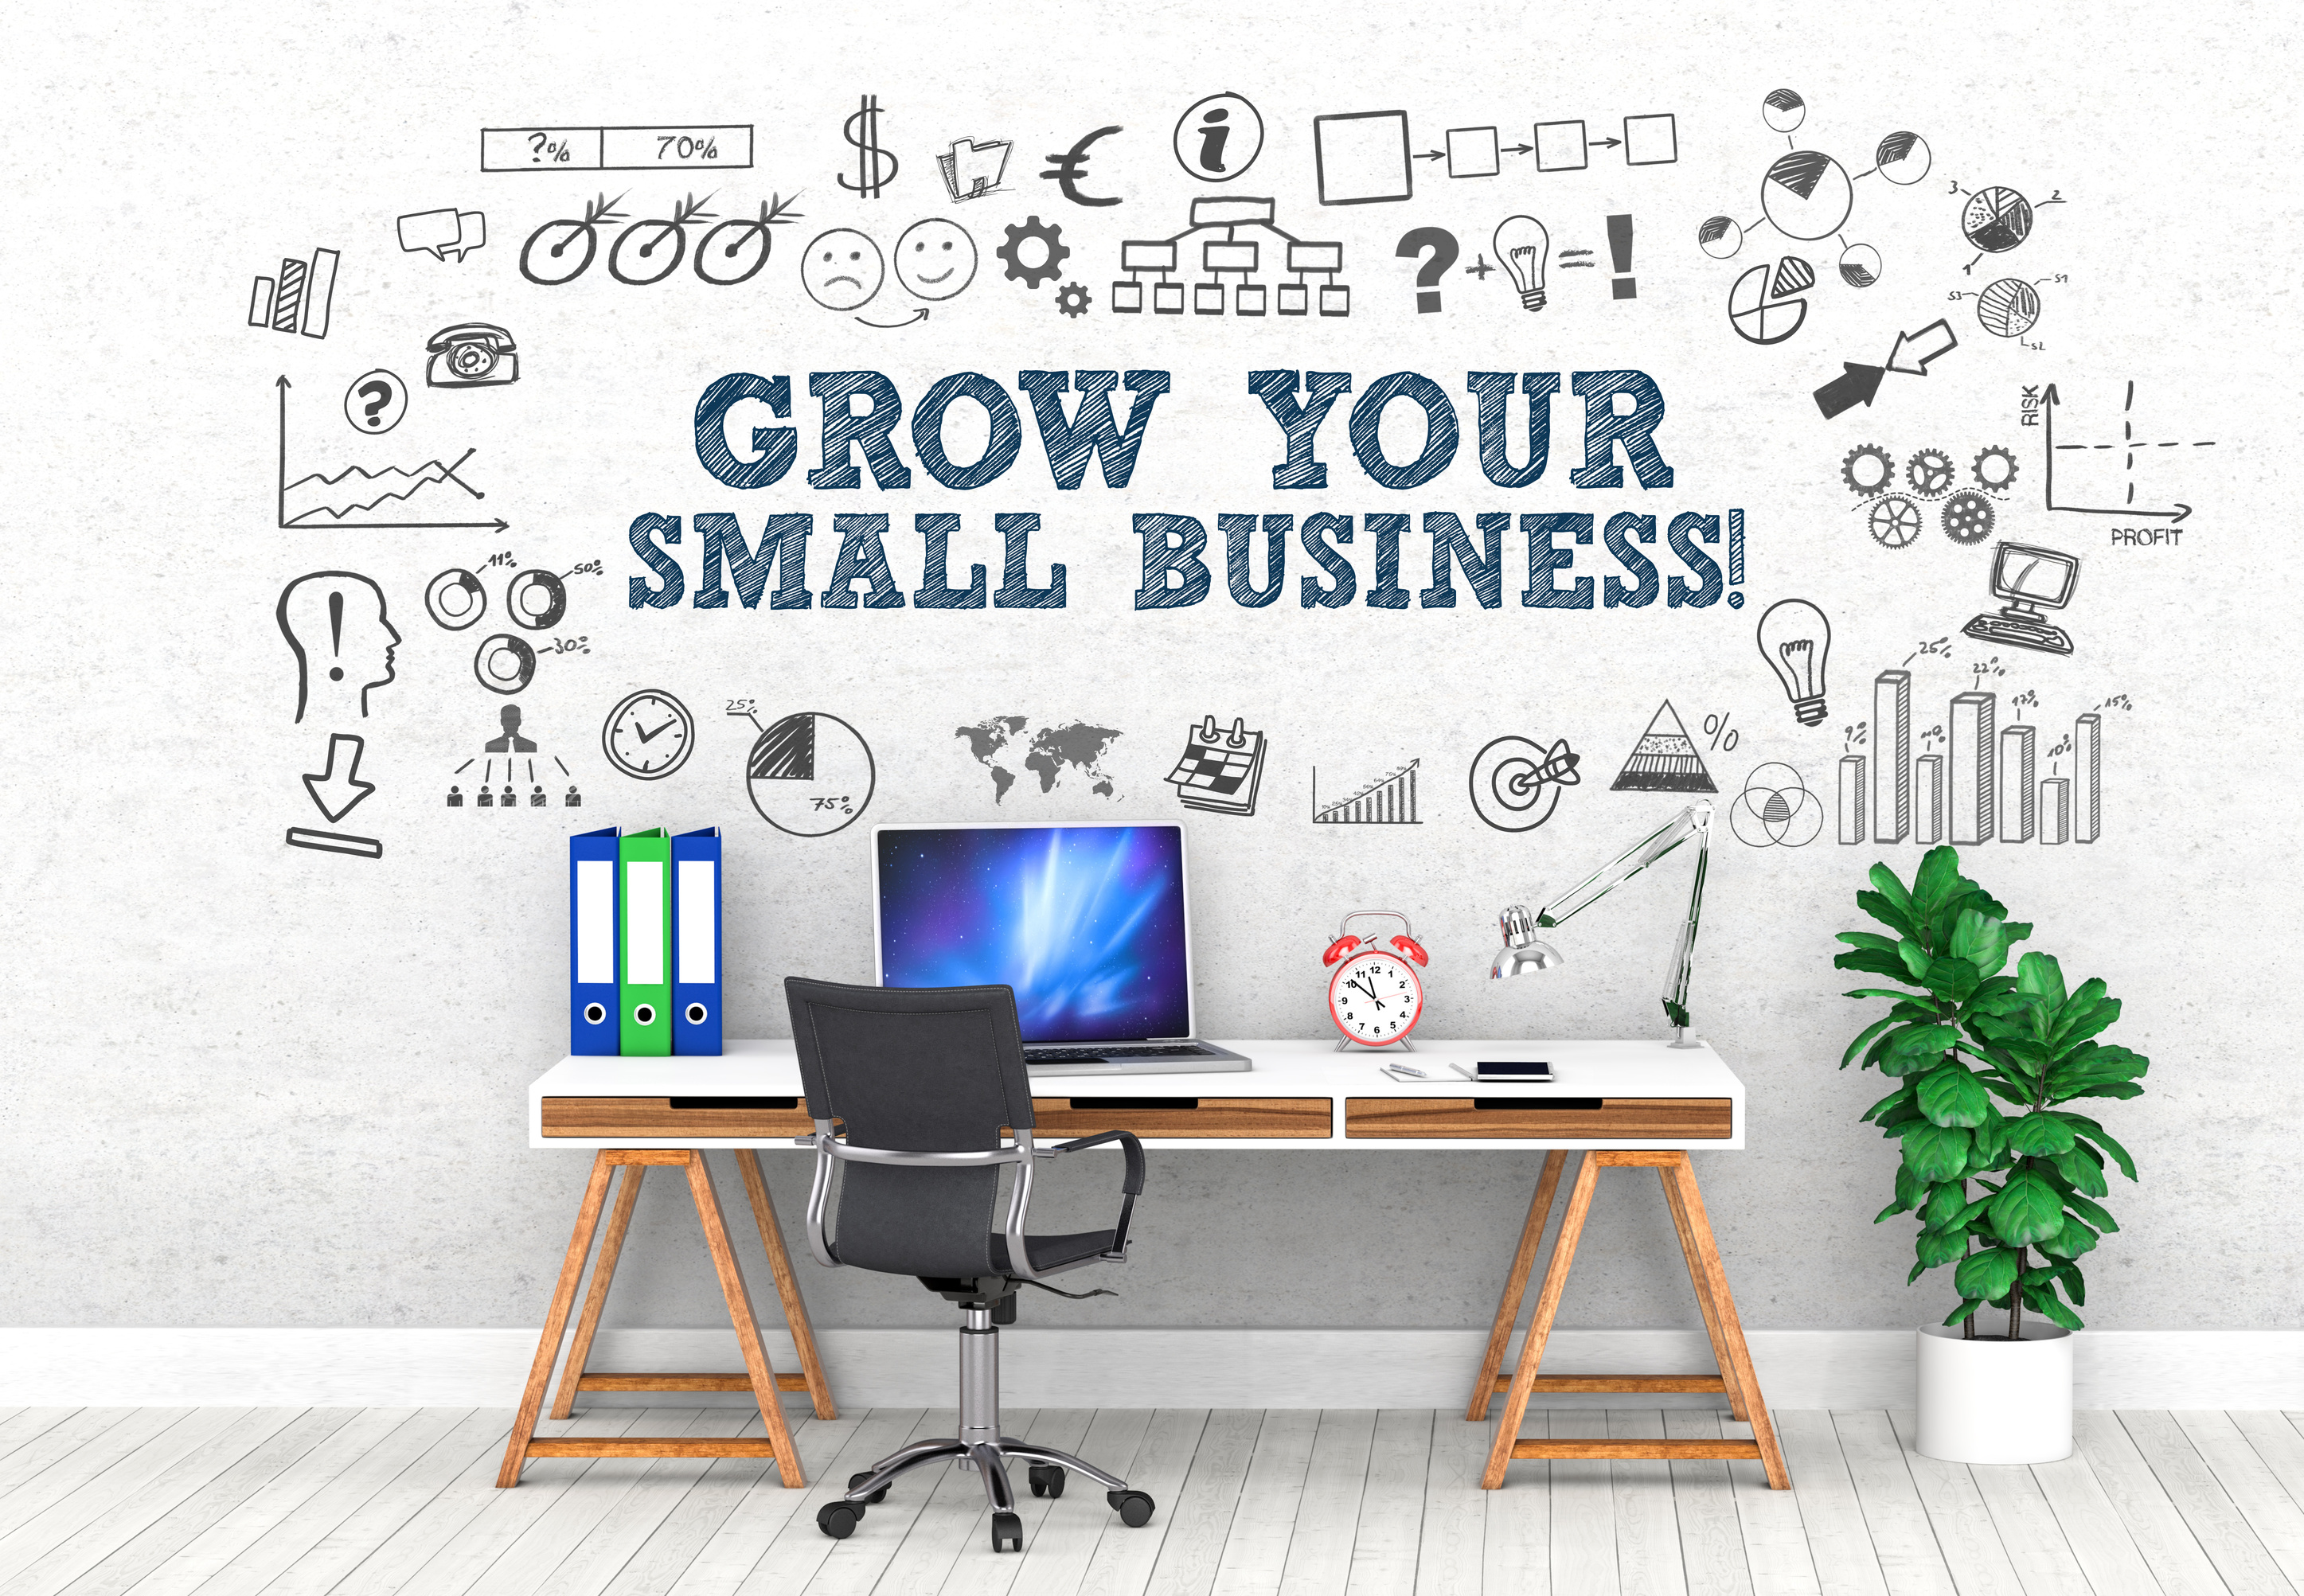 Advanced small business marketing: three forms of advertising with a negative net cost